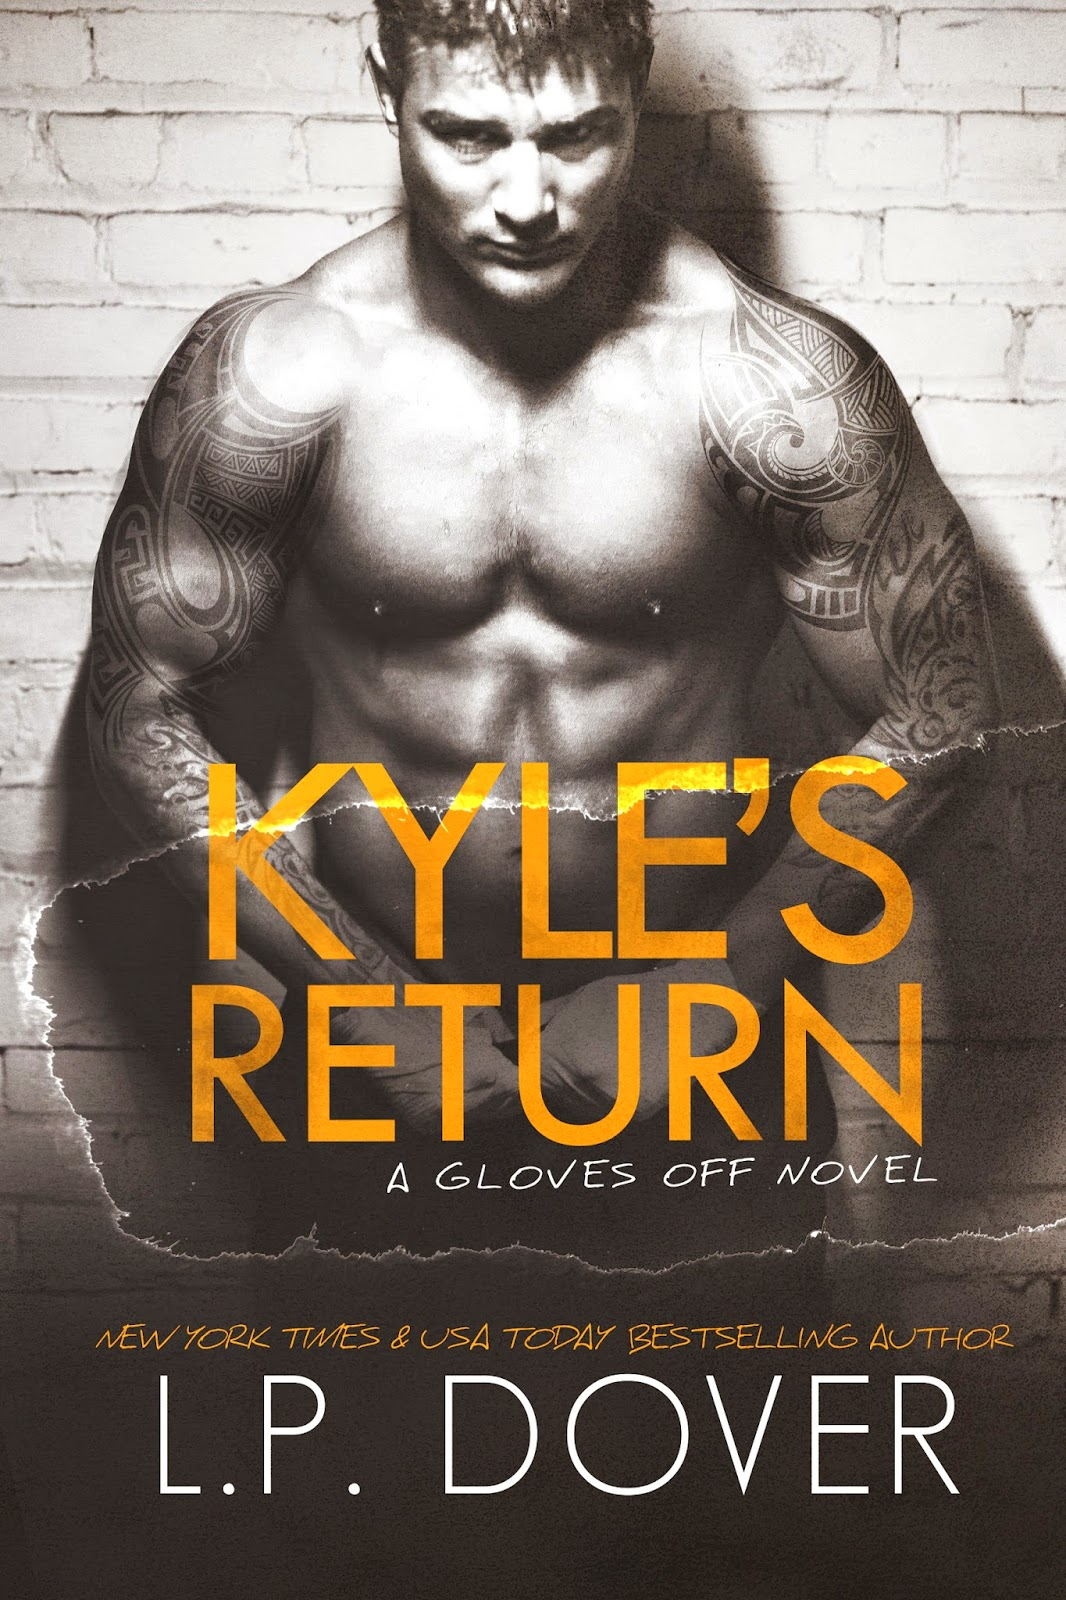 Kyle's Return on Goodreads